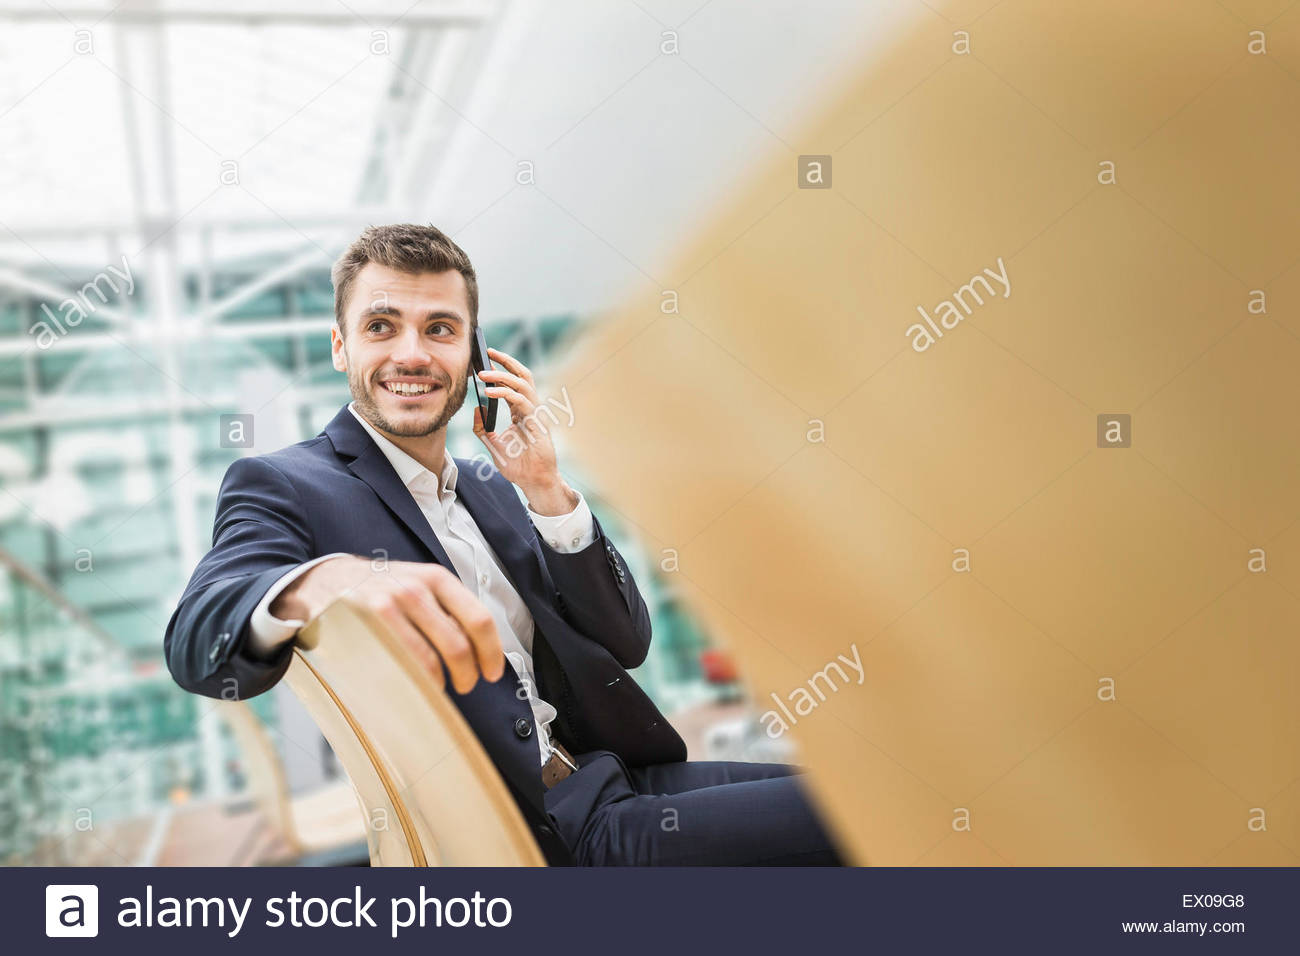 Young businessman in airport departure lounge chatting on smartphone - Stock Image